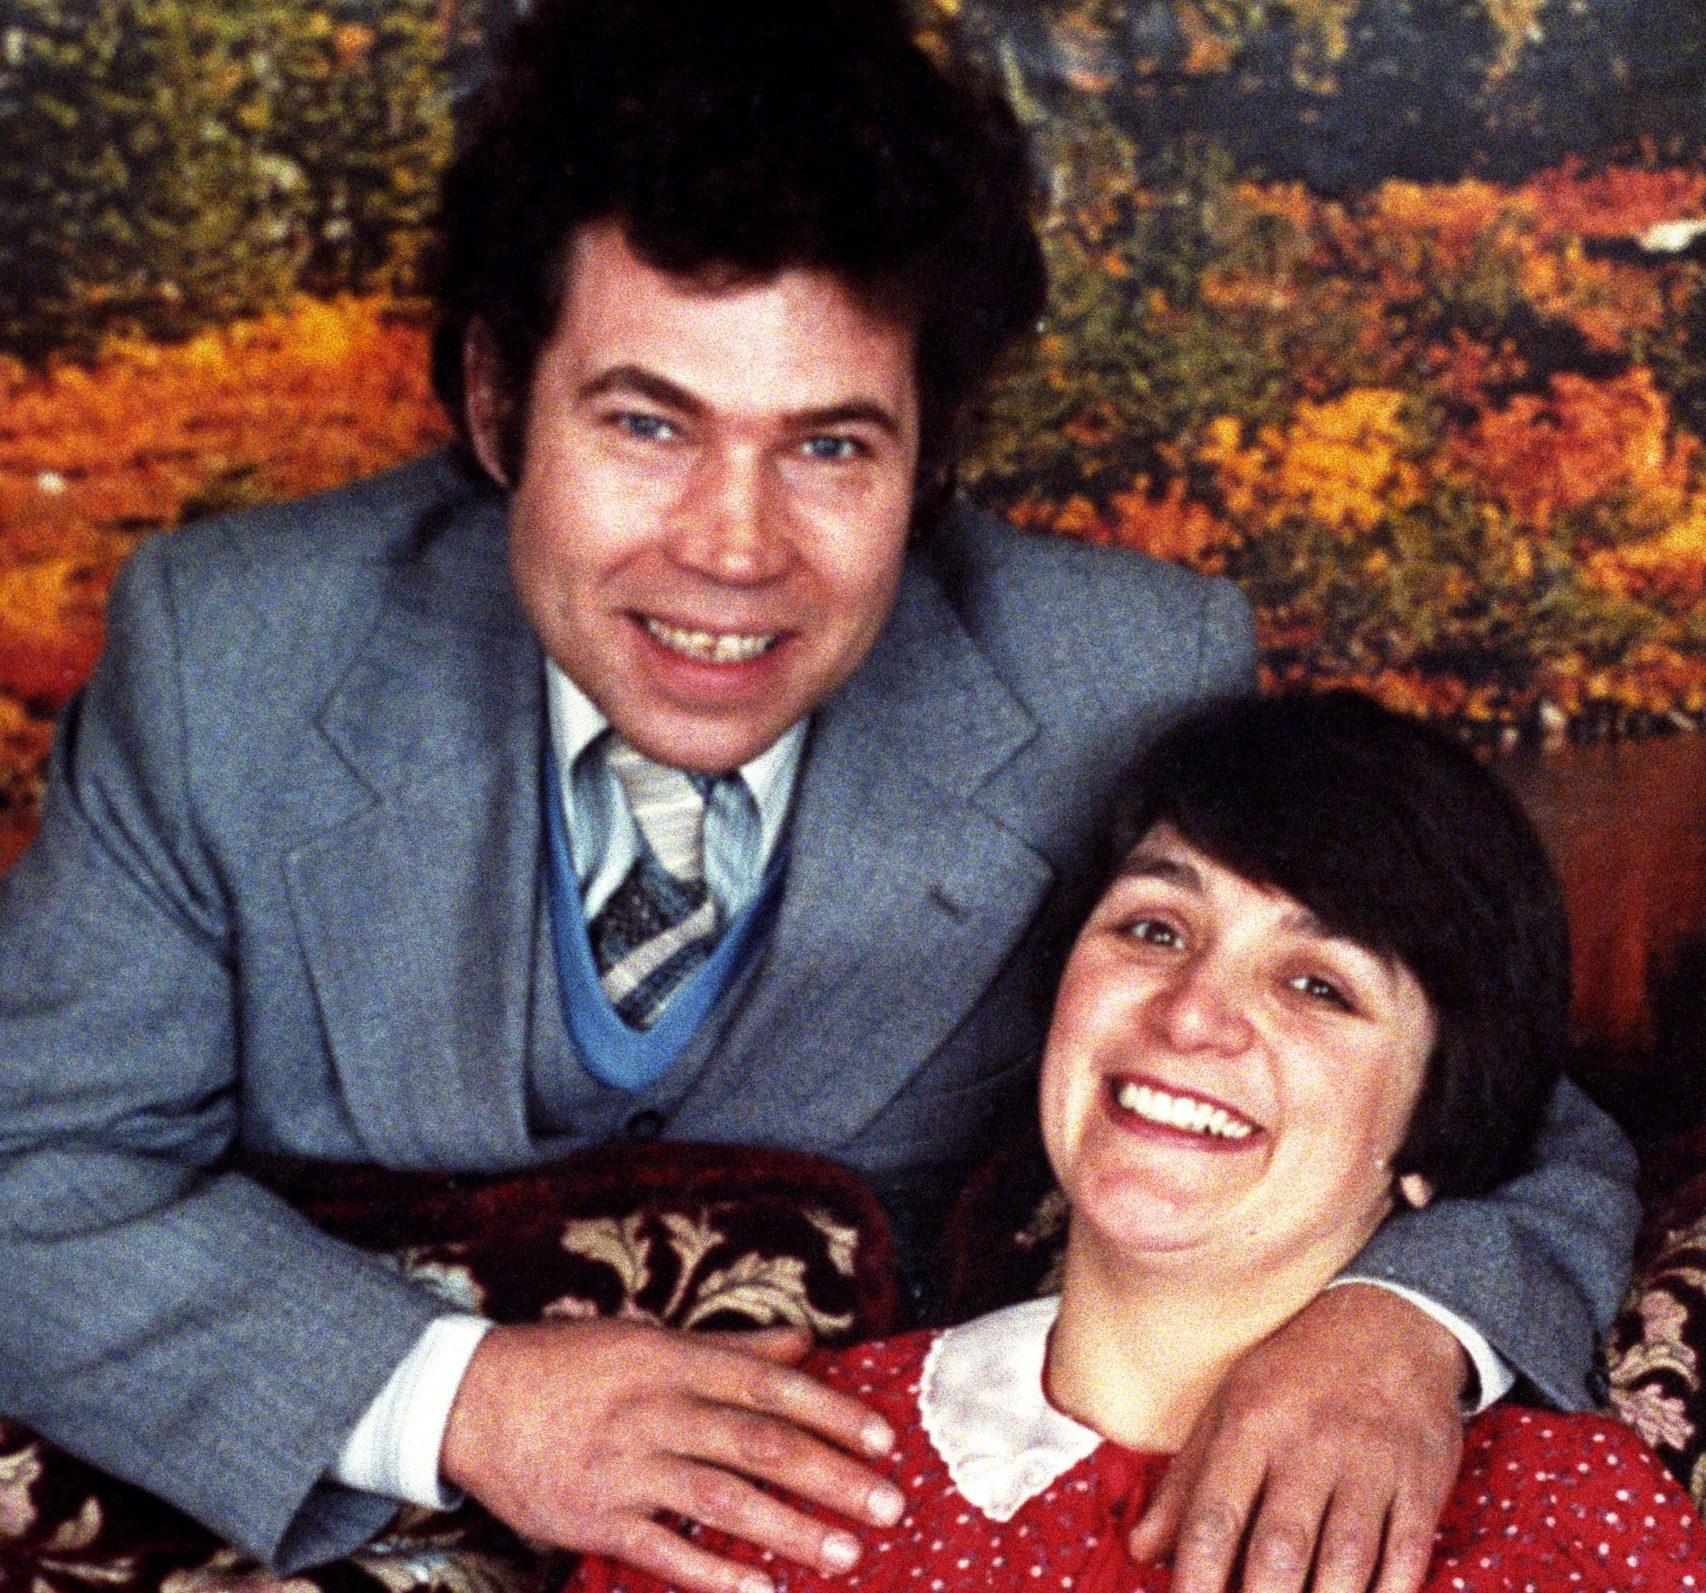 What did Fred and Rose West do, how many children did they murder and are they still alive?